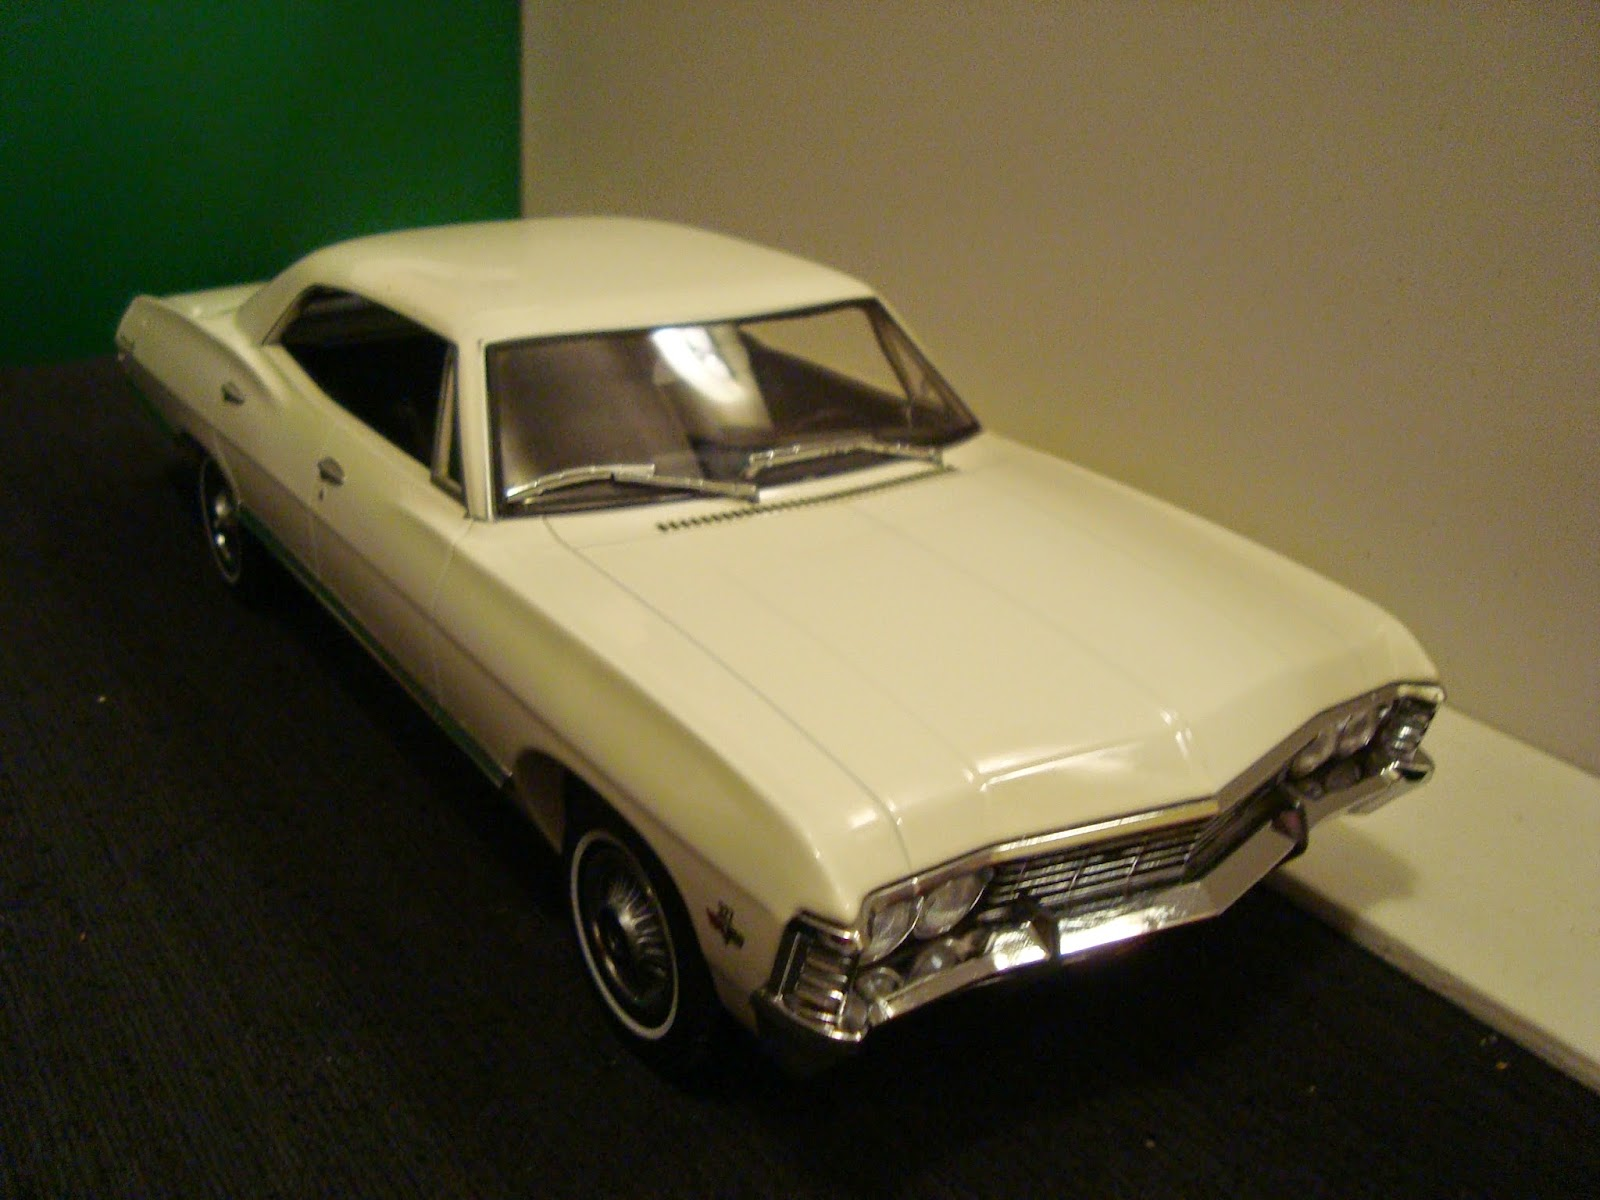 Diecast american car nutz 1967 chevrolet impala ss 1967 chevy impala ss four door supernatural black and stock white by greenlight diecast publicscrutiny Choice Image